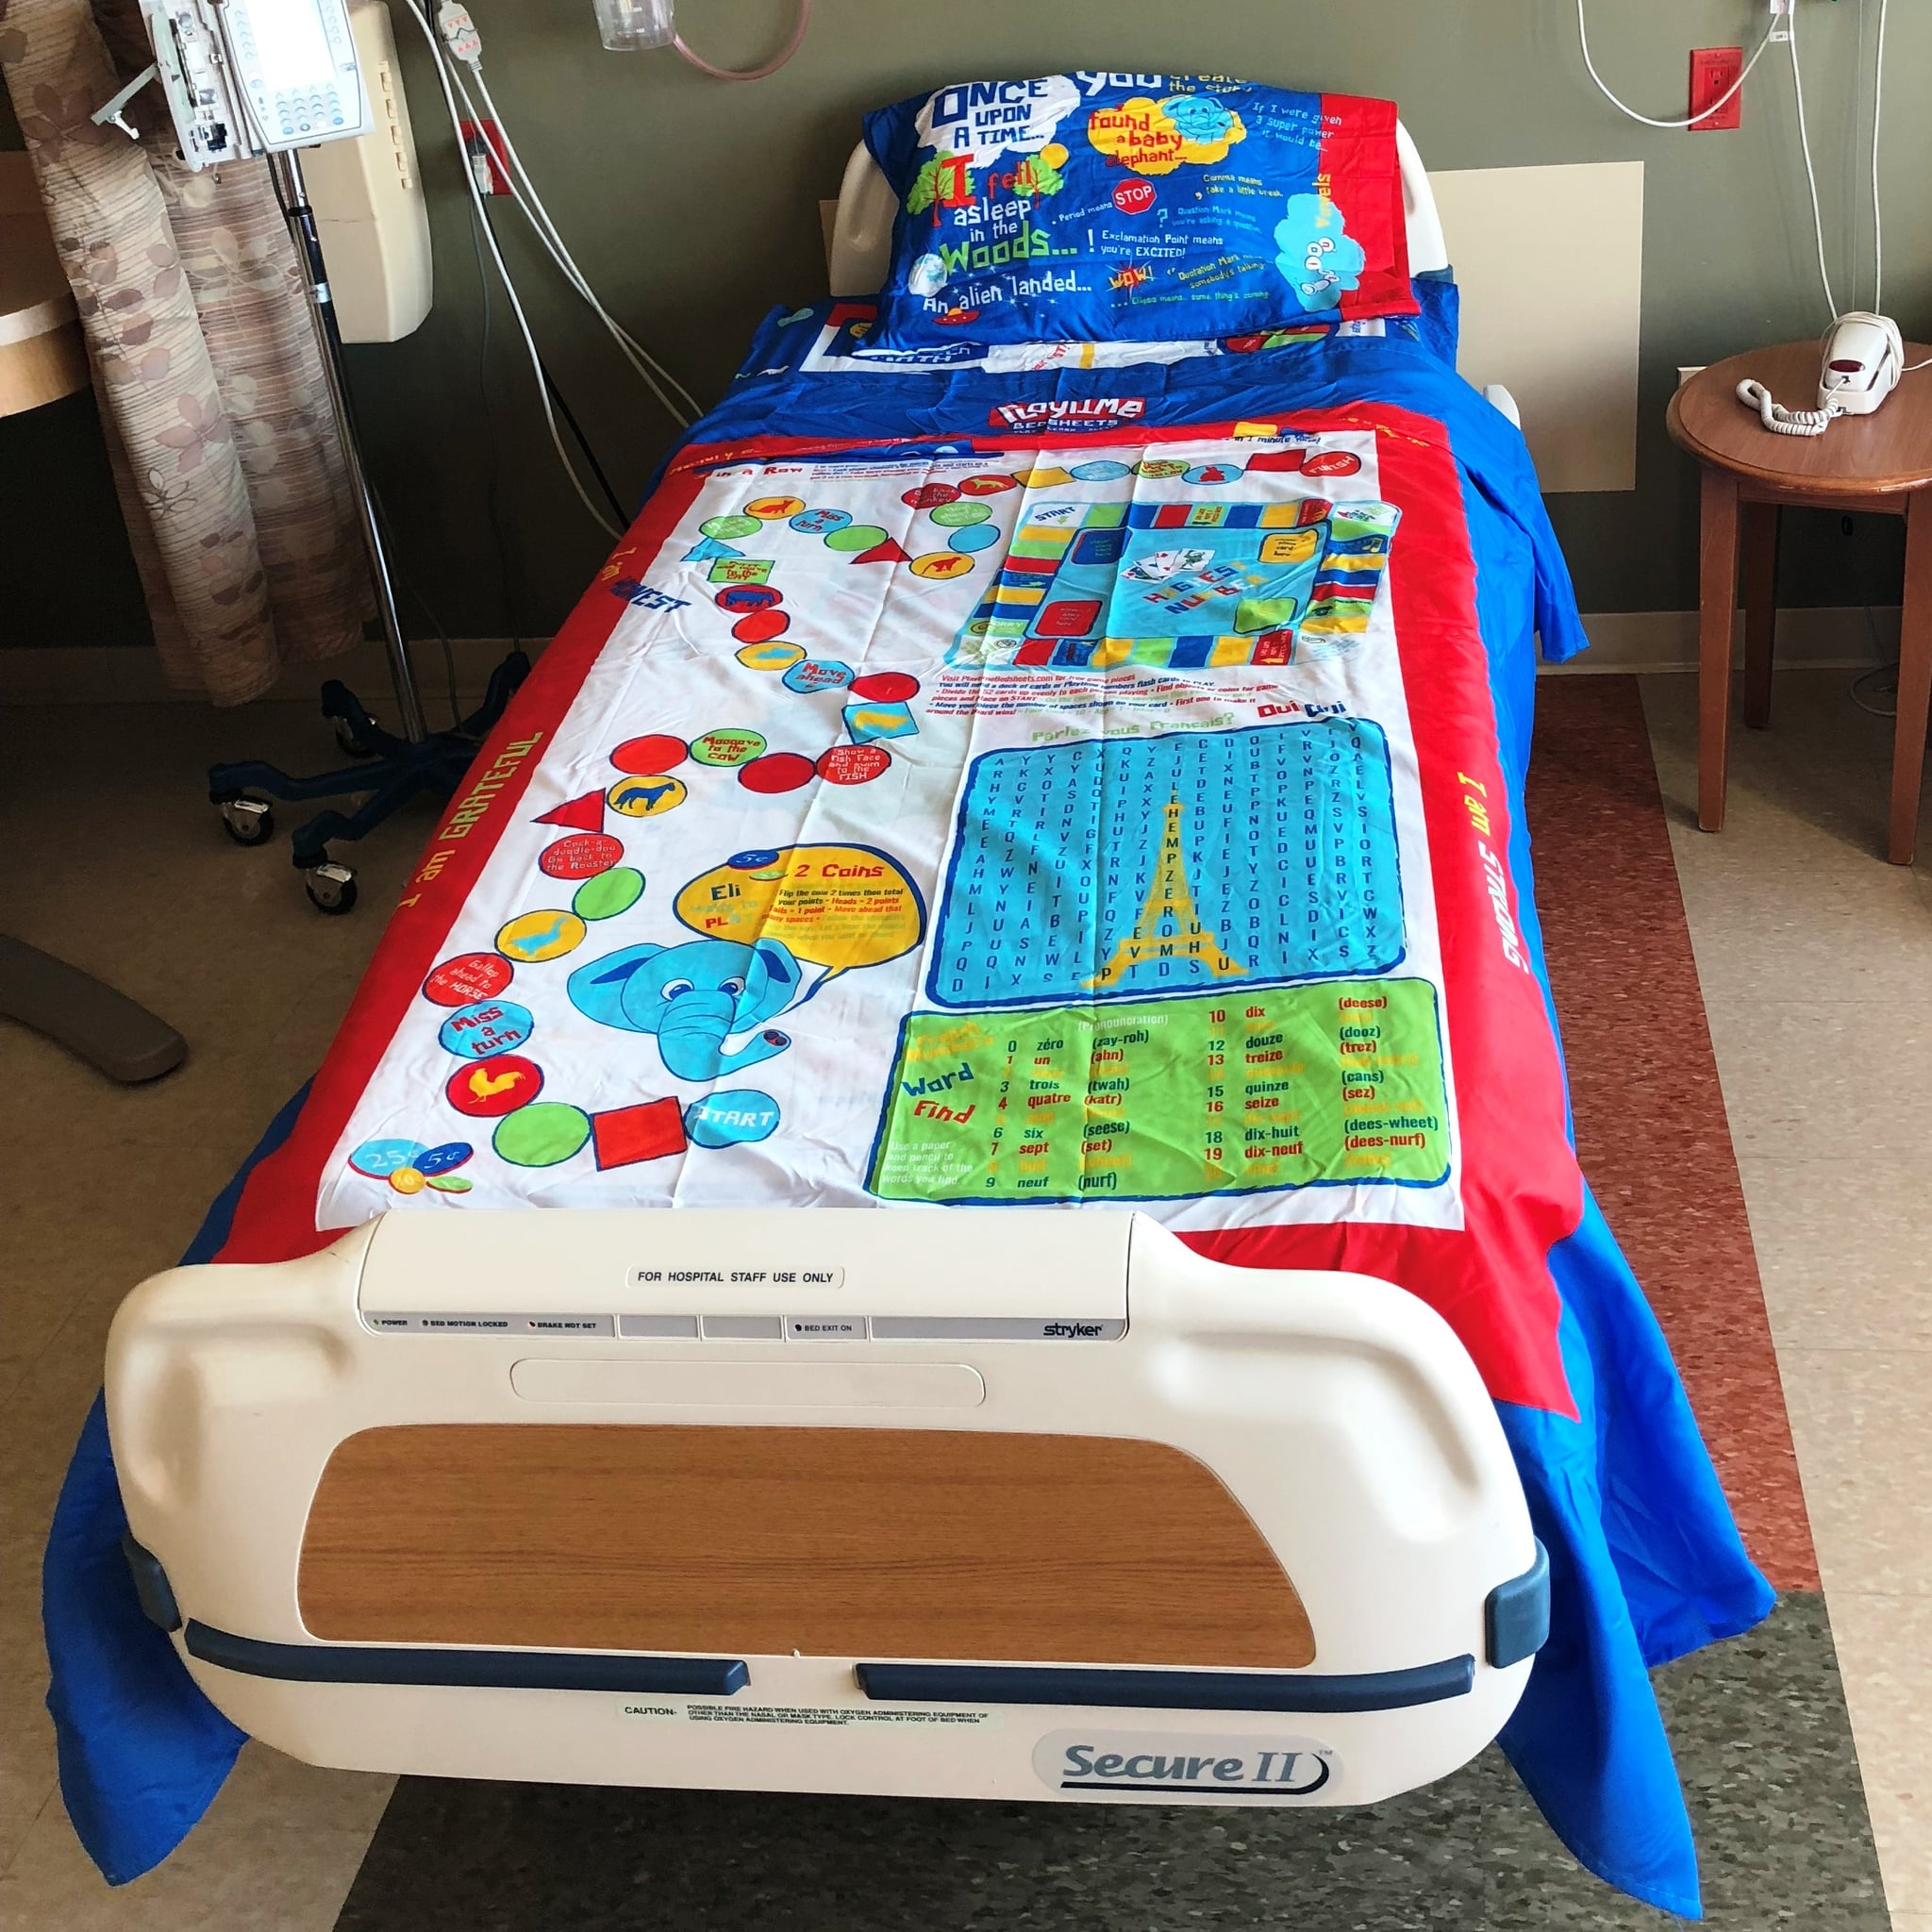 Game Of Love Sheets dad creates board game bed sheets for kids | popsugar family